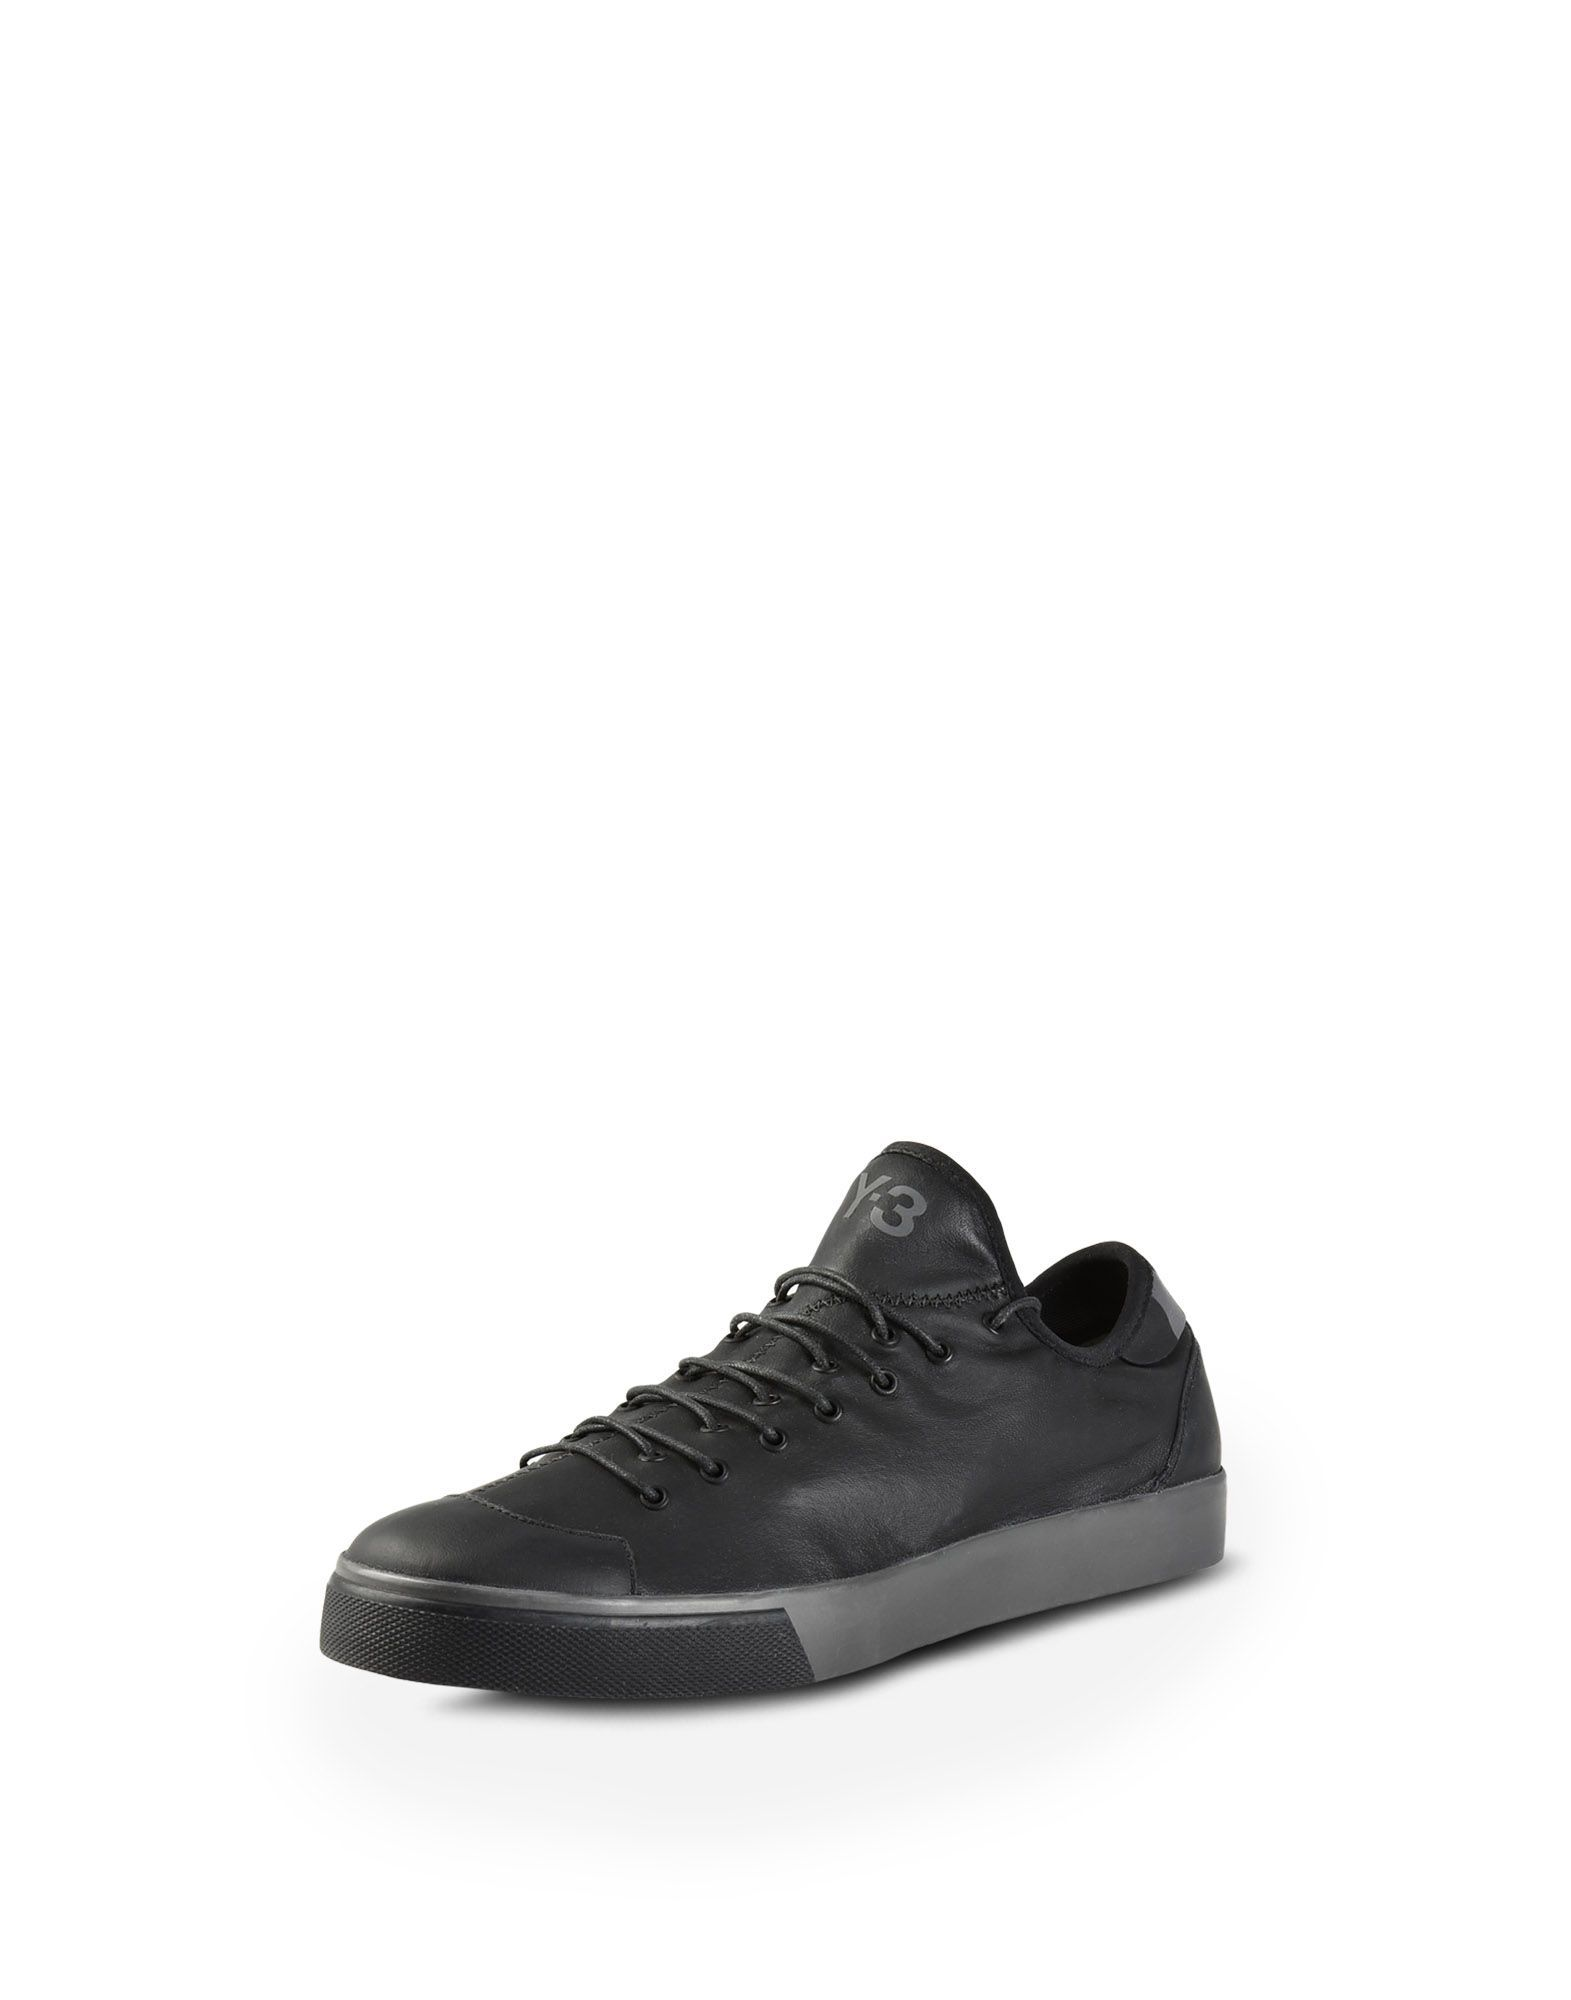 Y3 SEN LOW Shoes unisex Y3 adidas Sneakers, All black